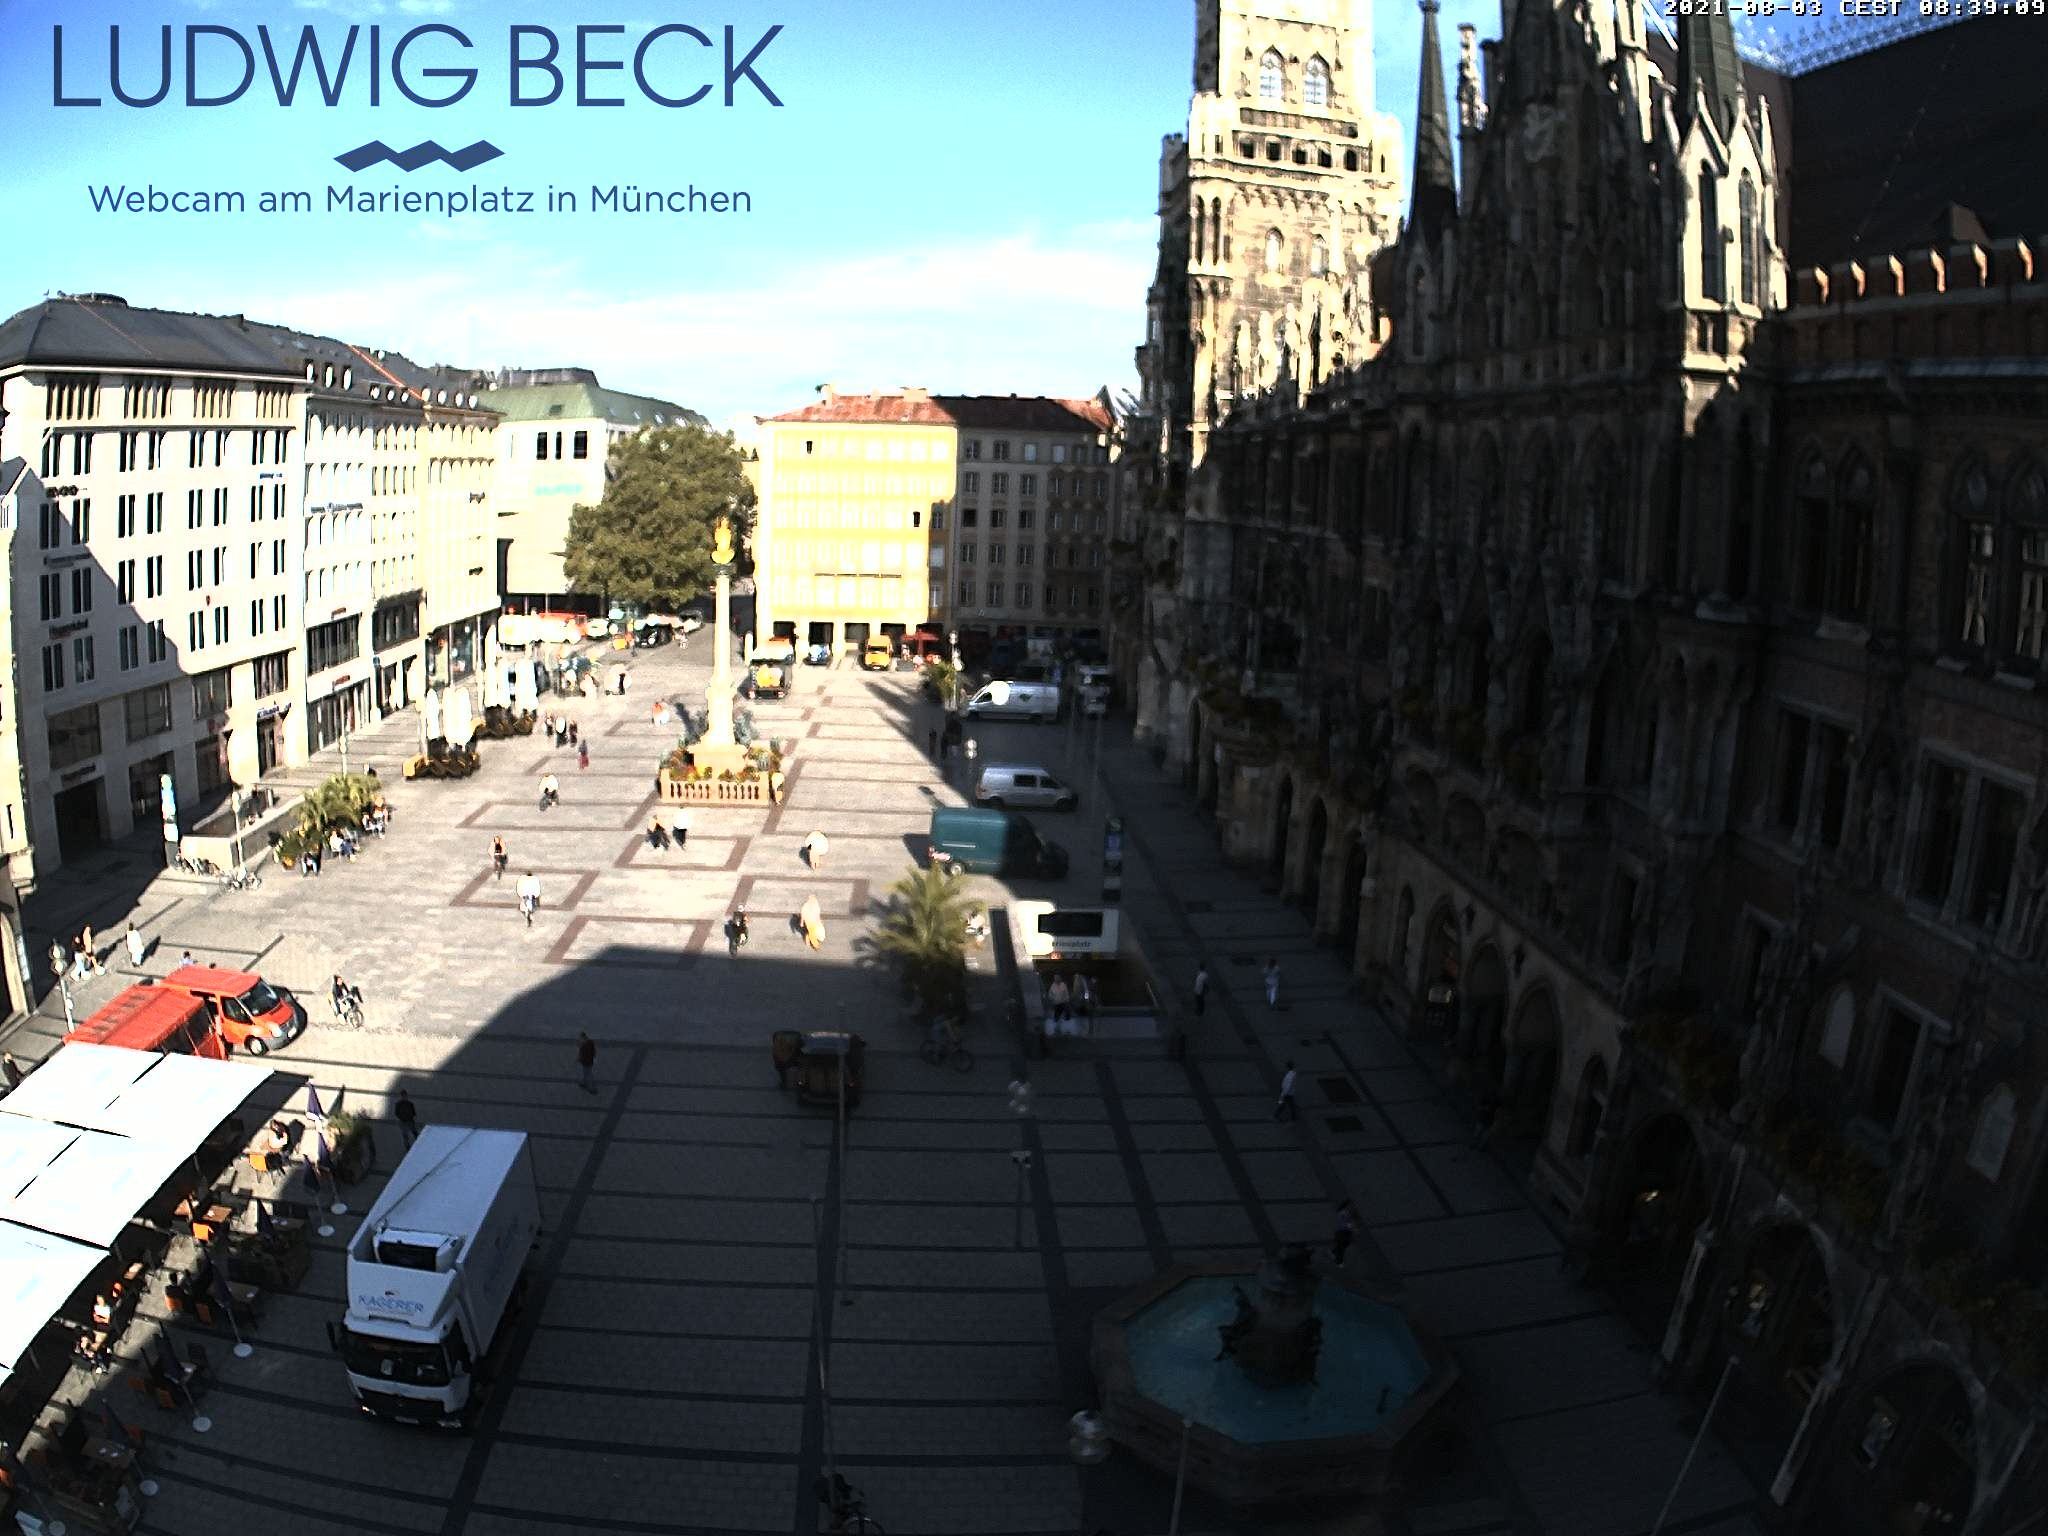 ludwig beck webcam